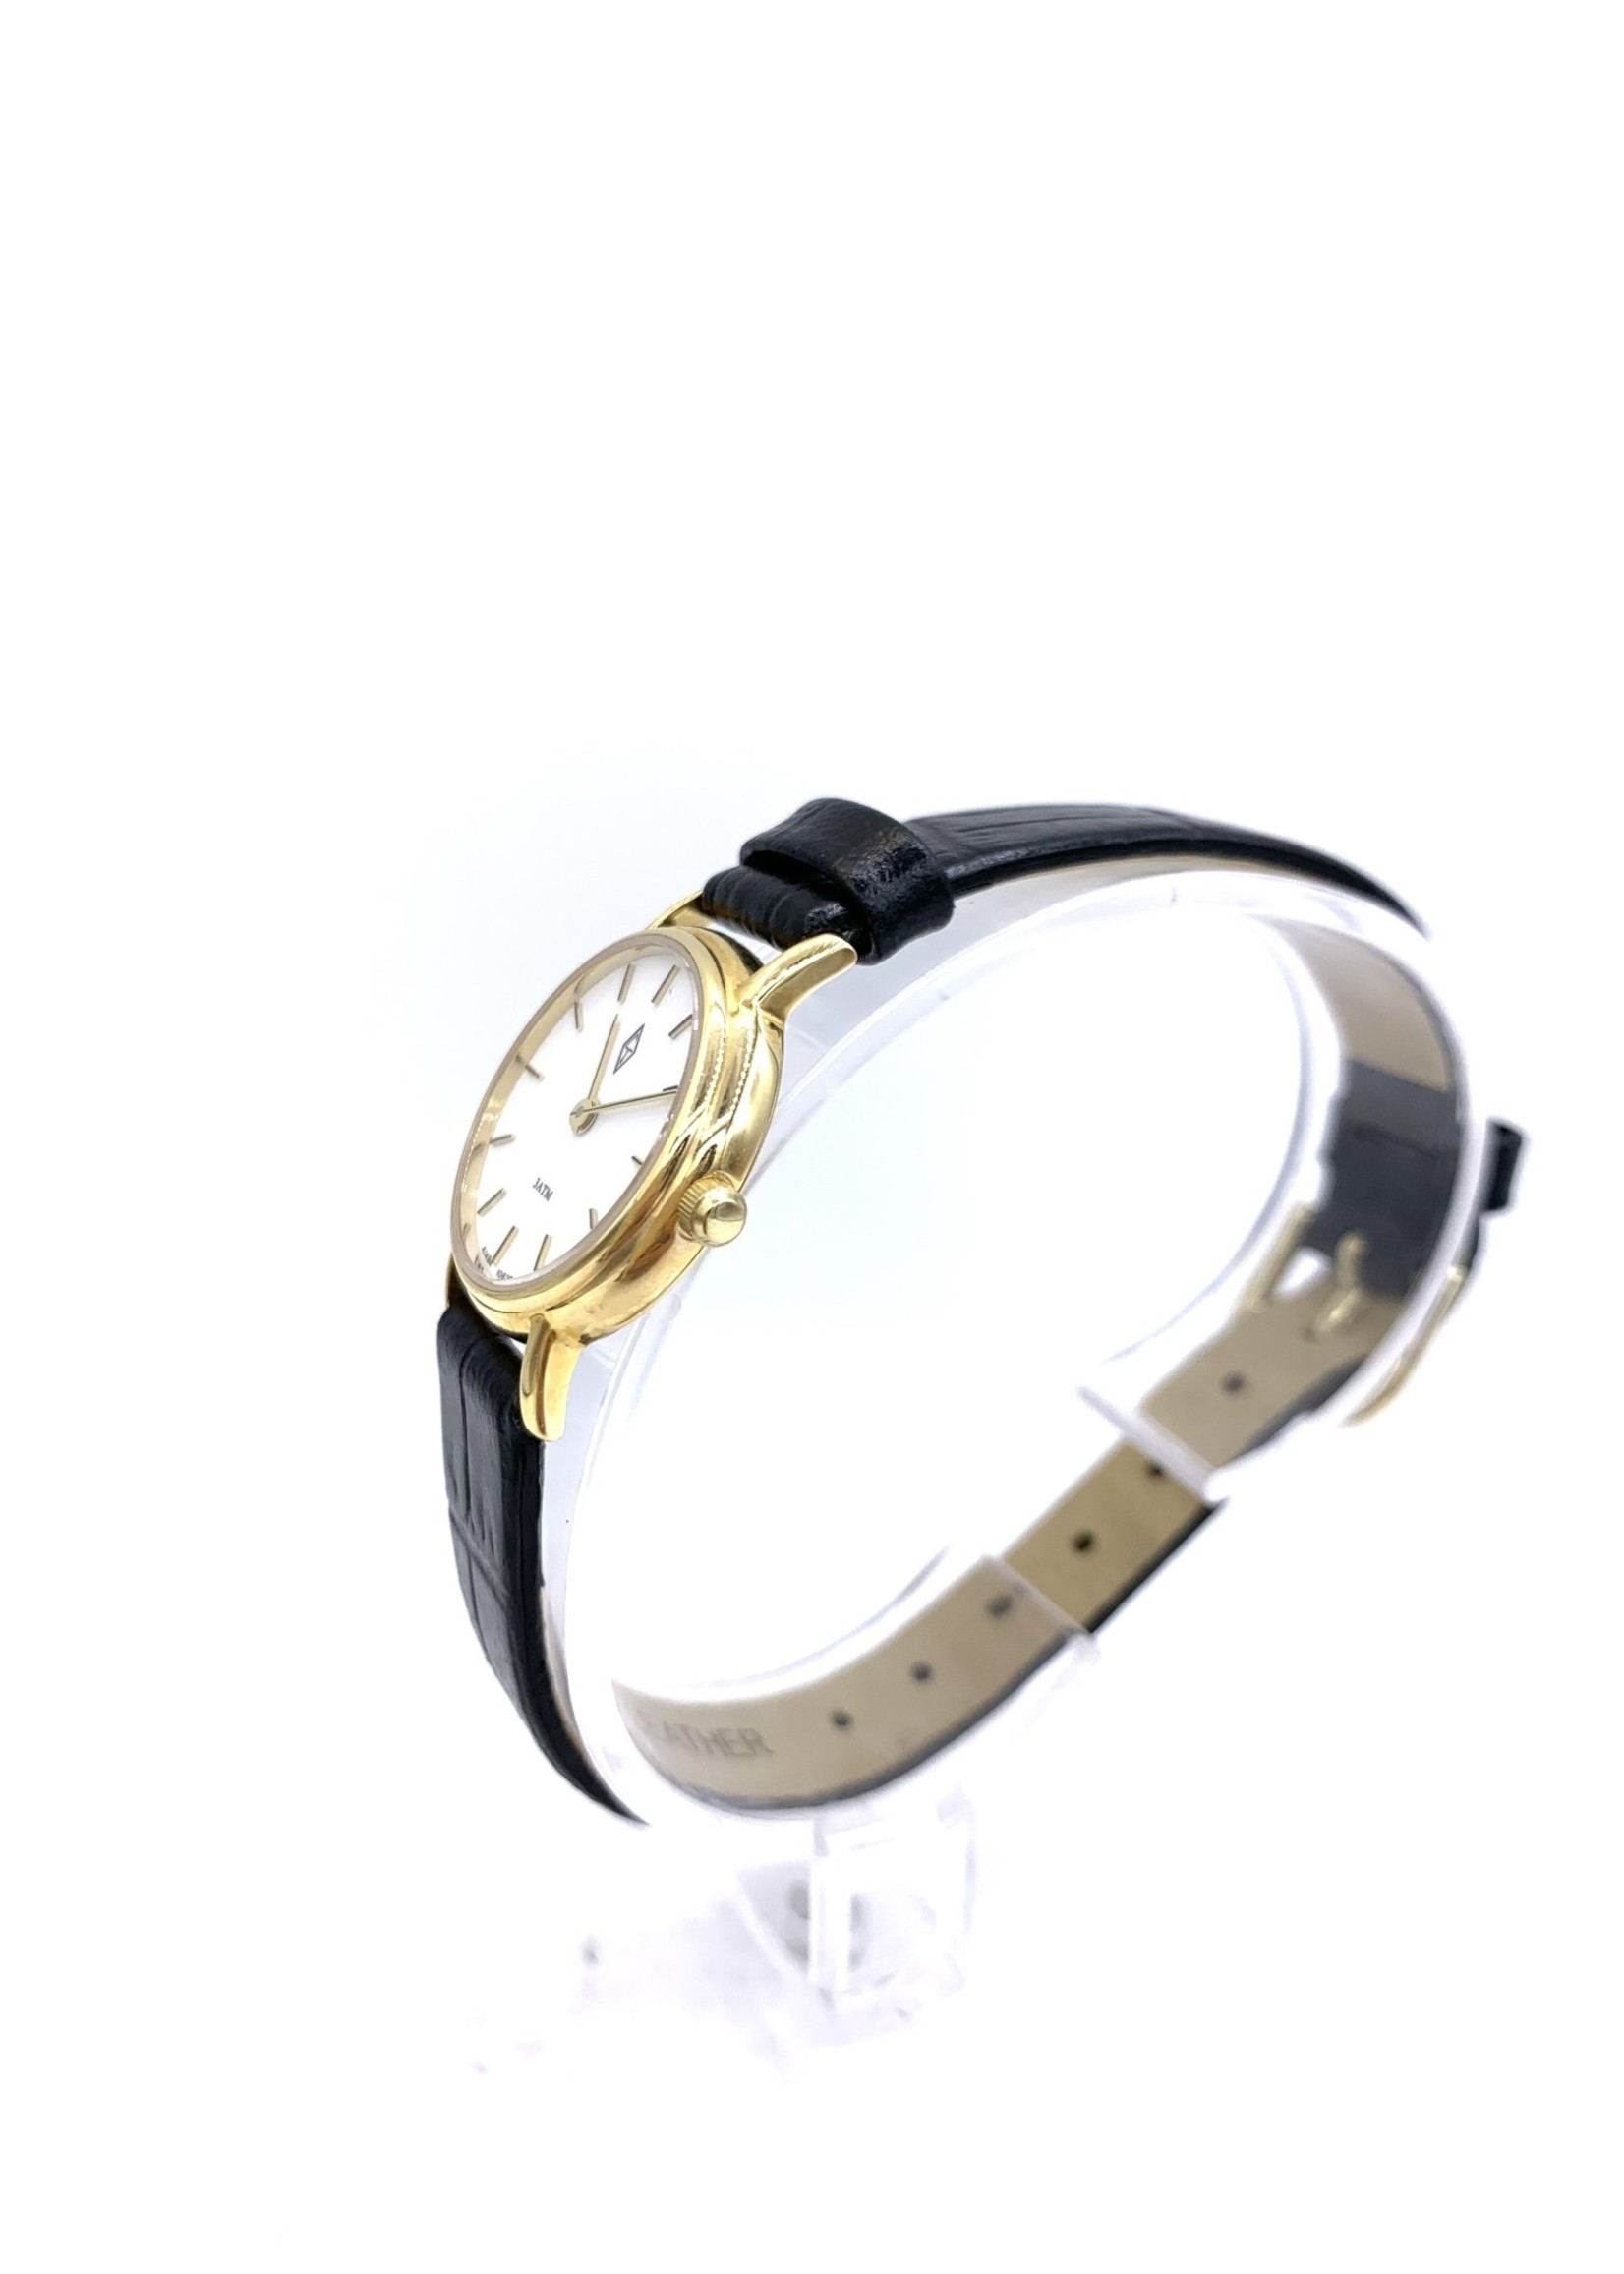 Belair Time Corp Cj Design Watch 14k Yellow with Strap Buckle